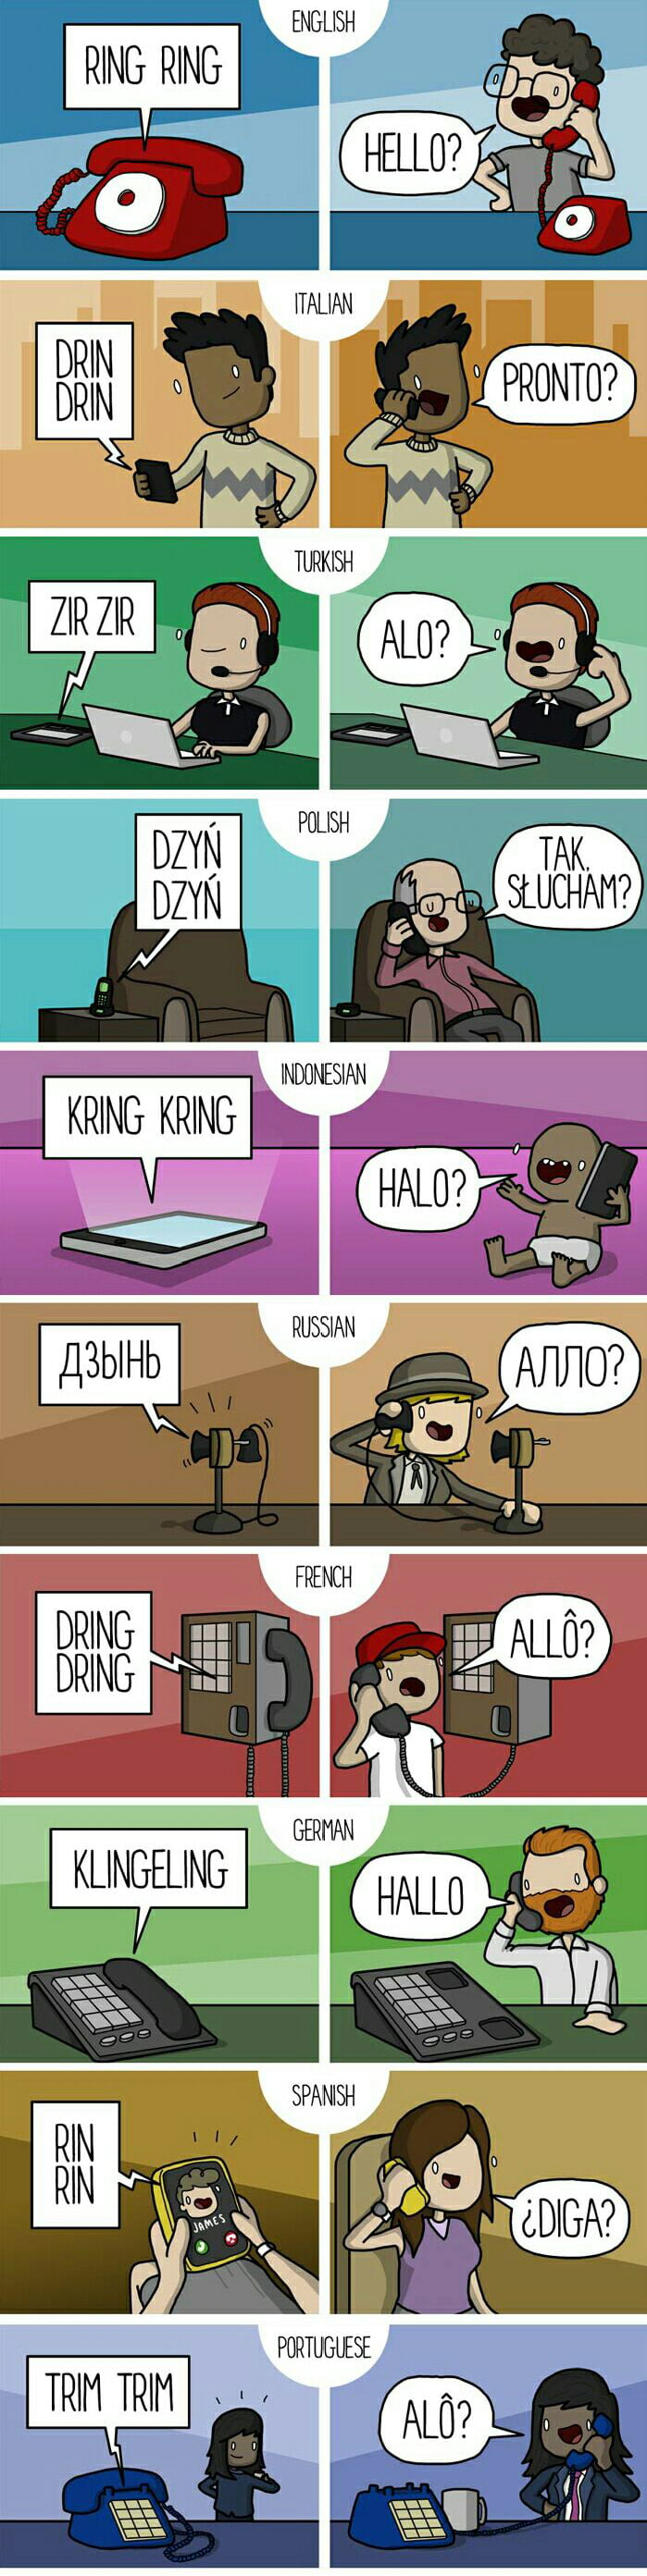 Answering the phone in different languages.